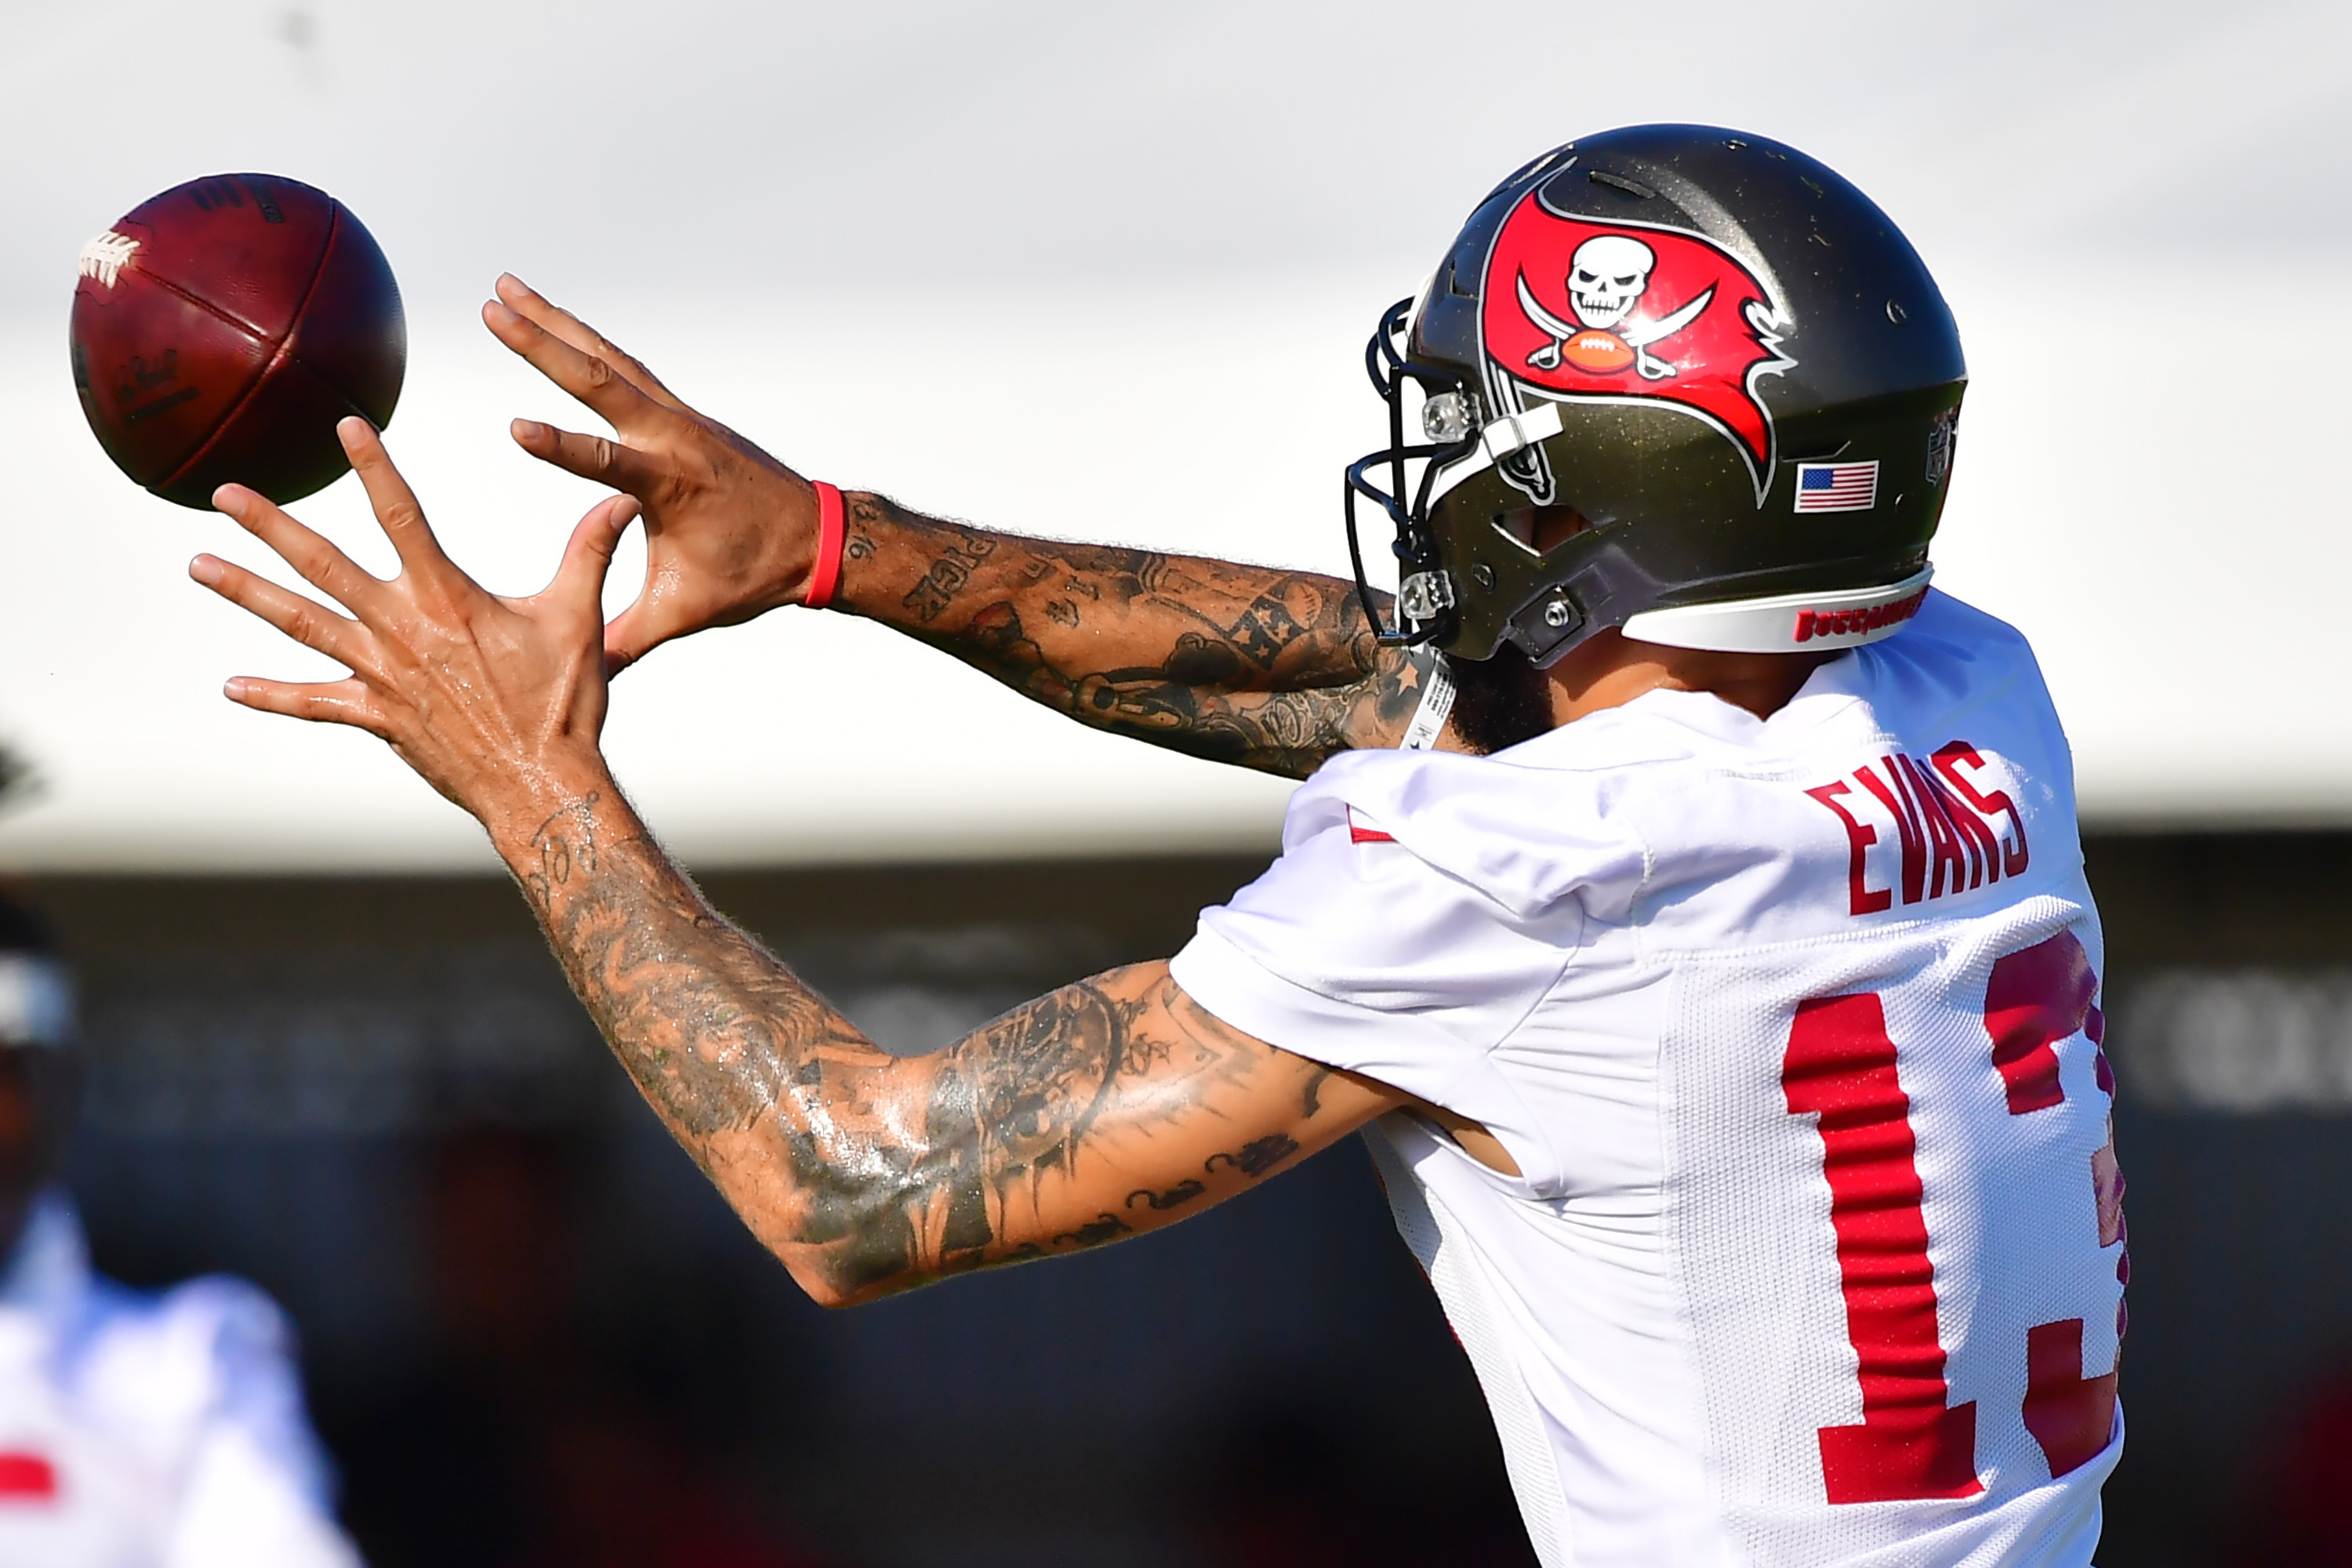 Mike Evans #13 of the Tampa Bay Buccaneers looks to catch a pass during training camp at AdventHealth Training Center on July 26, 2021 in Tampa, Florida.